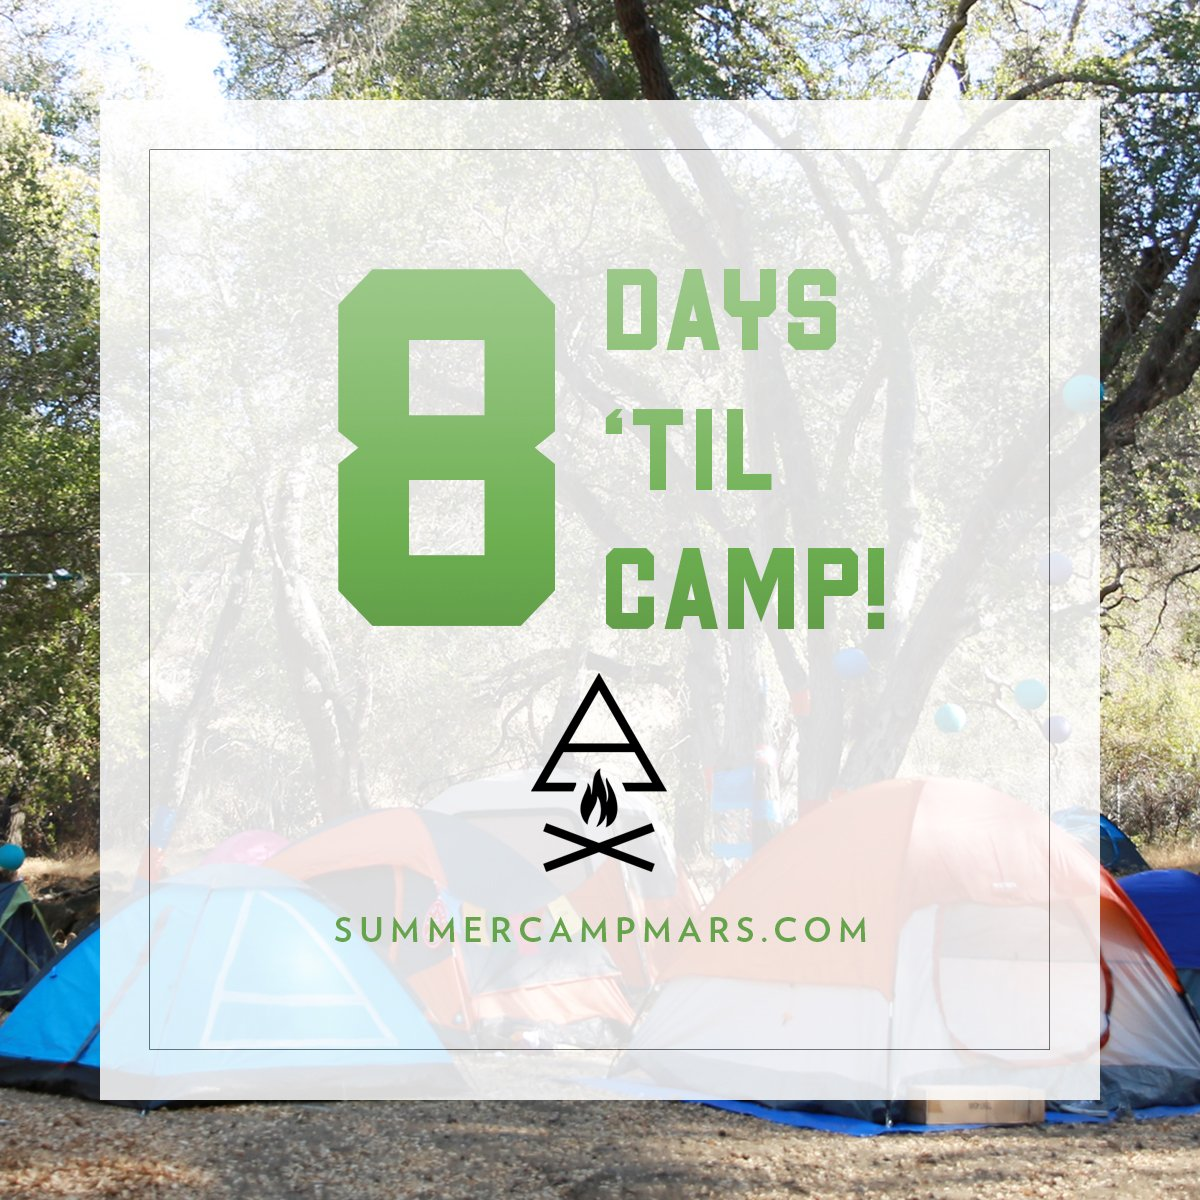 There's still time. Hope to see our international family at @SummerCampMars in just 8 DAYS: https://t.co/pjqvJre2DW https://t.co/lSphiuTUrO